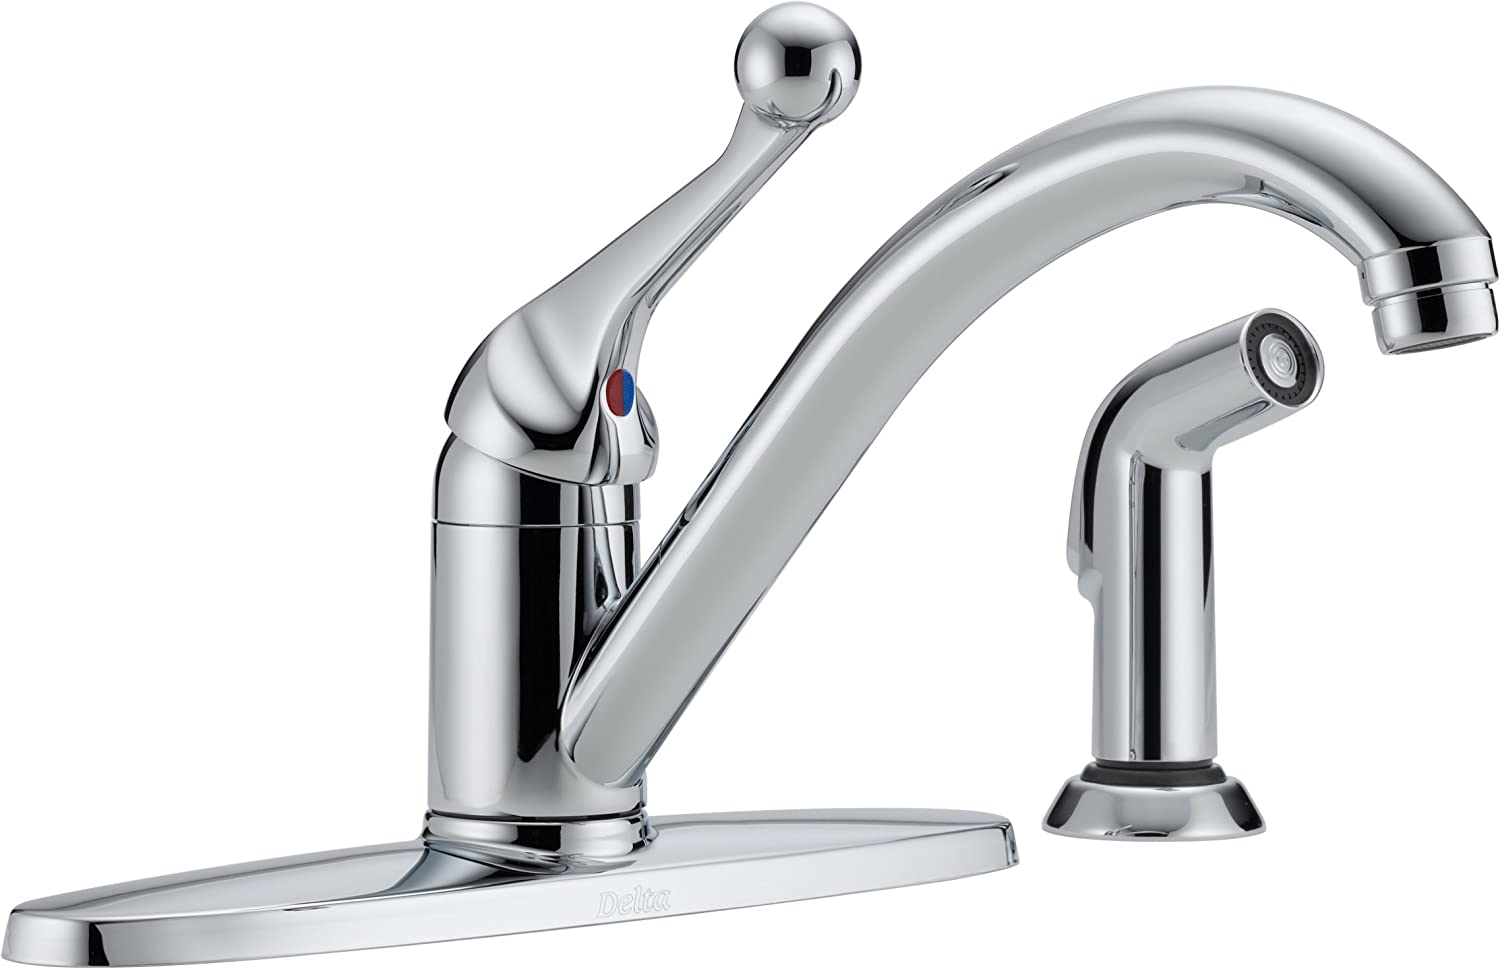 Delta 400-BH-DST Classic Single Handle Kitchen Faucet with Spray, Chrome